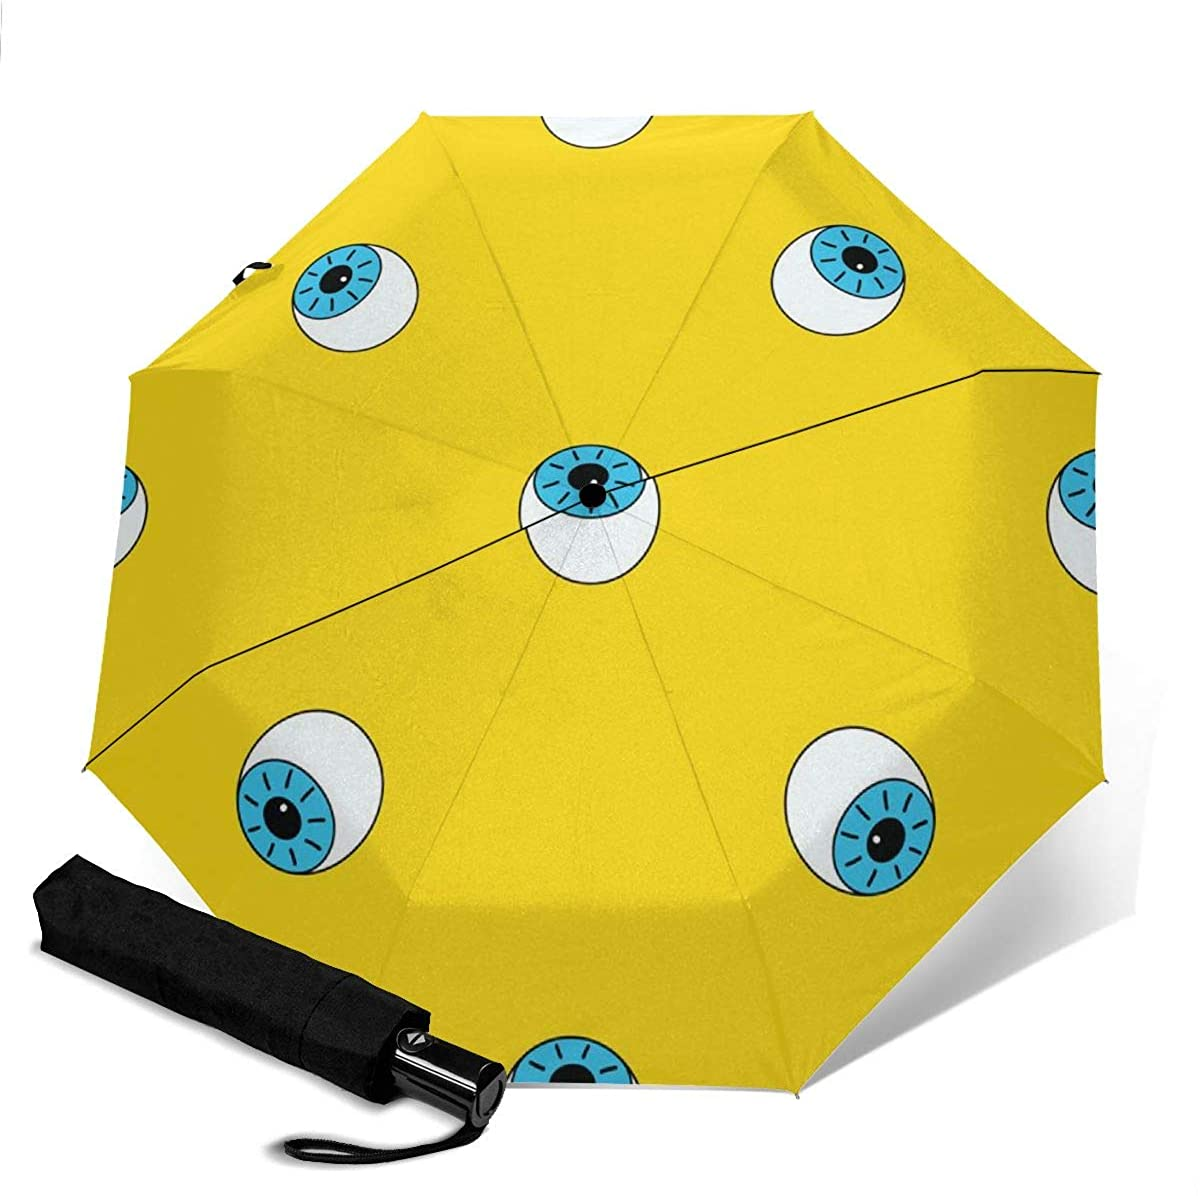 Pattern With Eye Vector Image Compact Travel Umbrella Windproof Reinforced Canopy 8 Ribs Umbrella Auto Open And Close Button Personalized